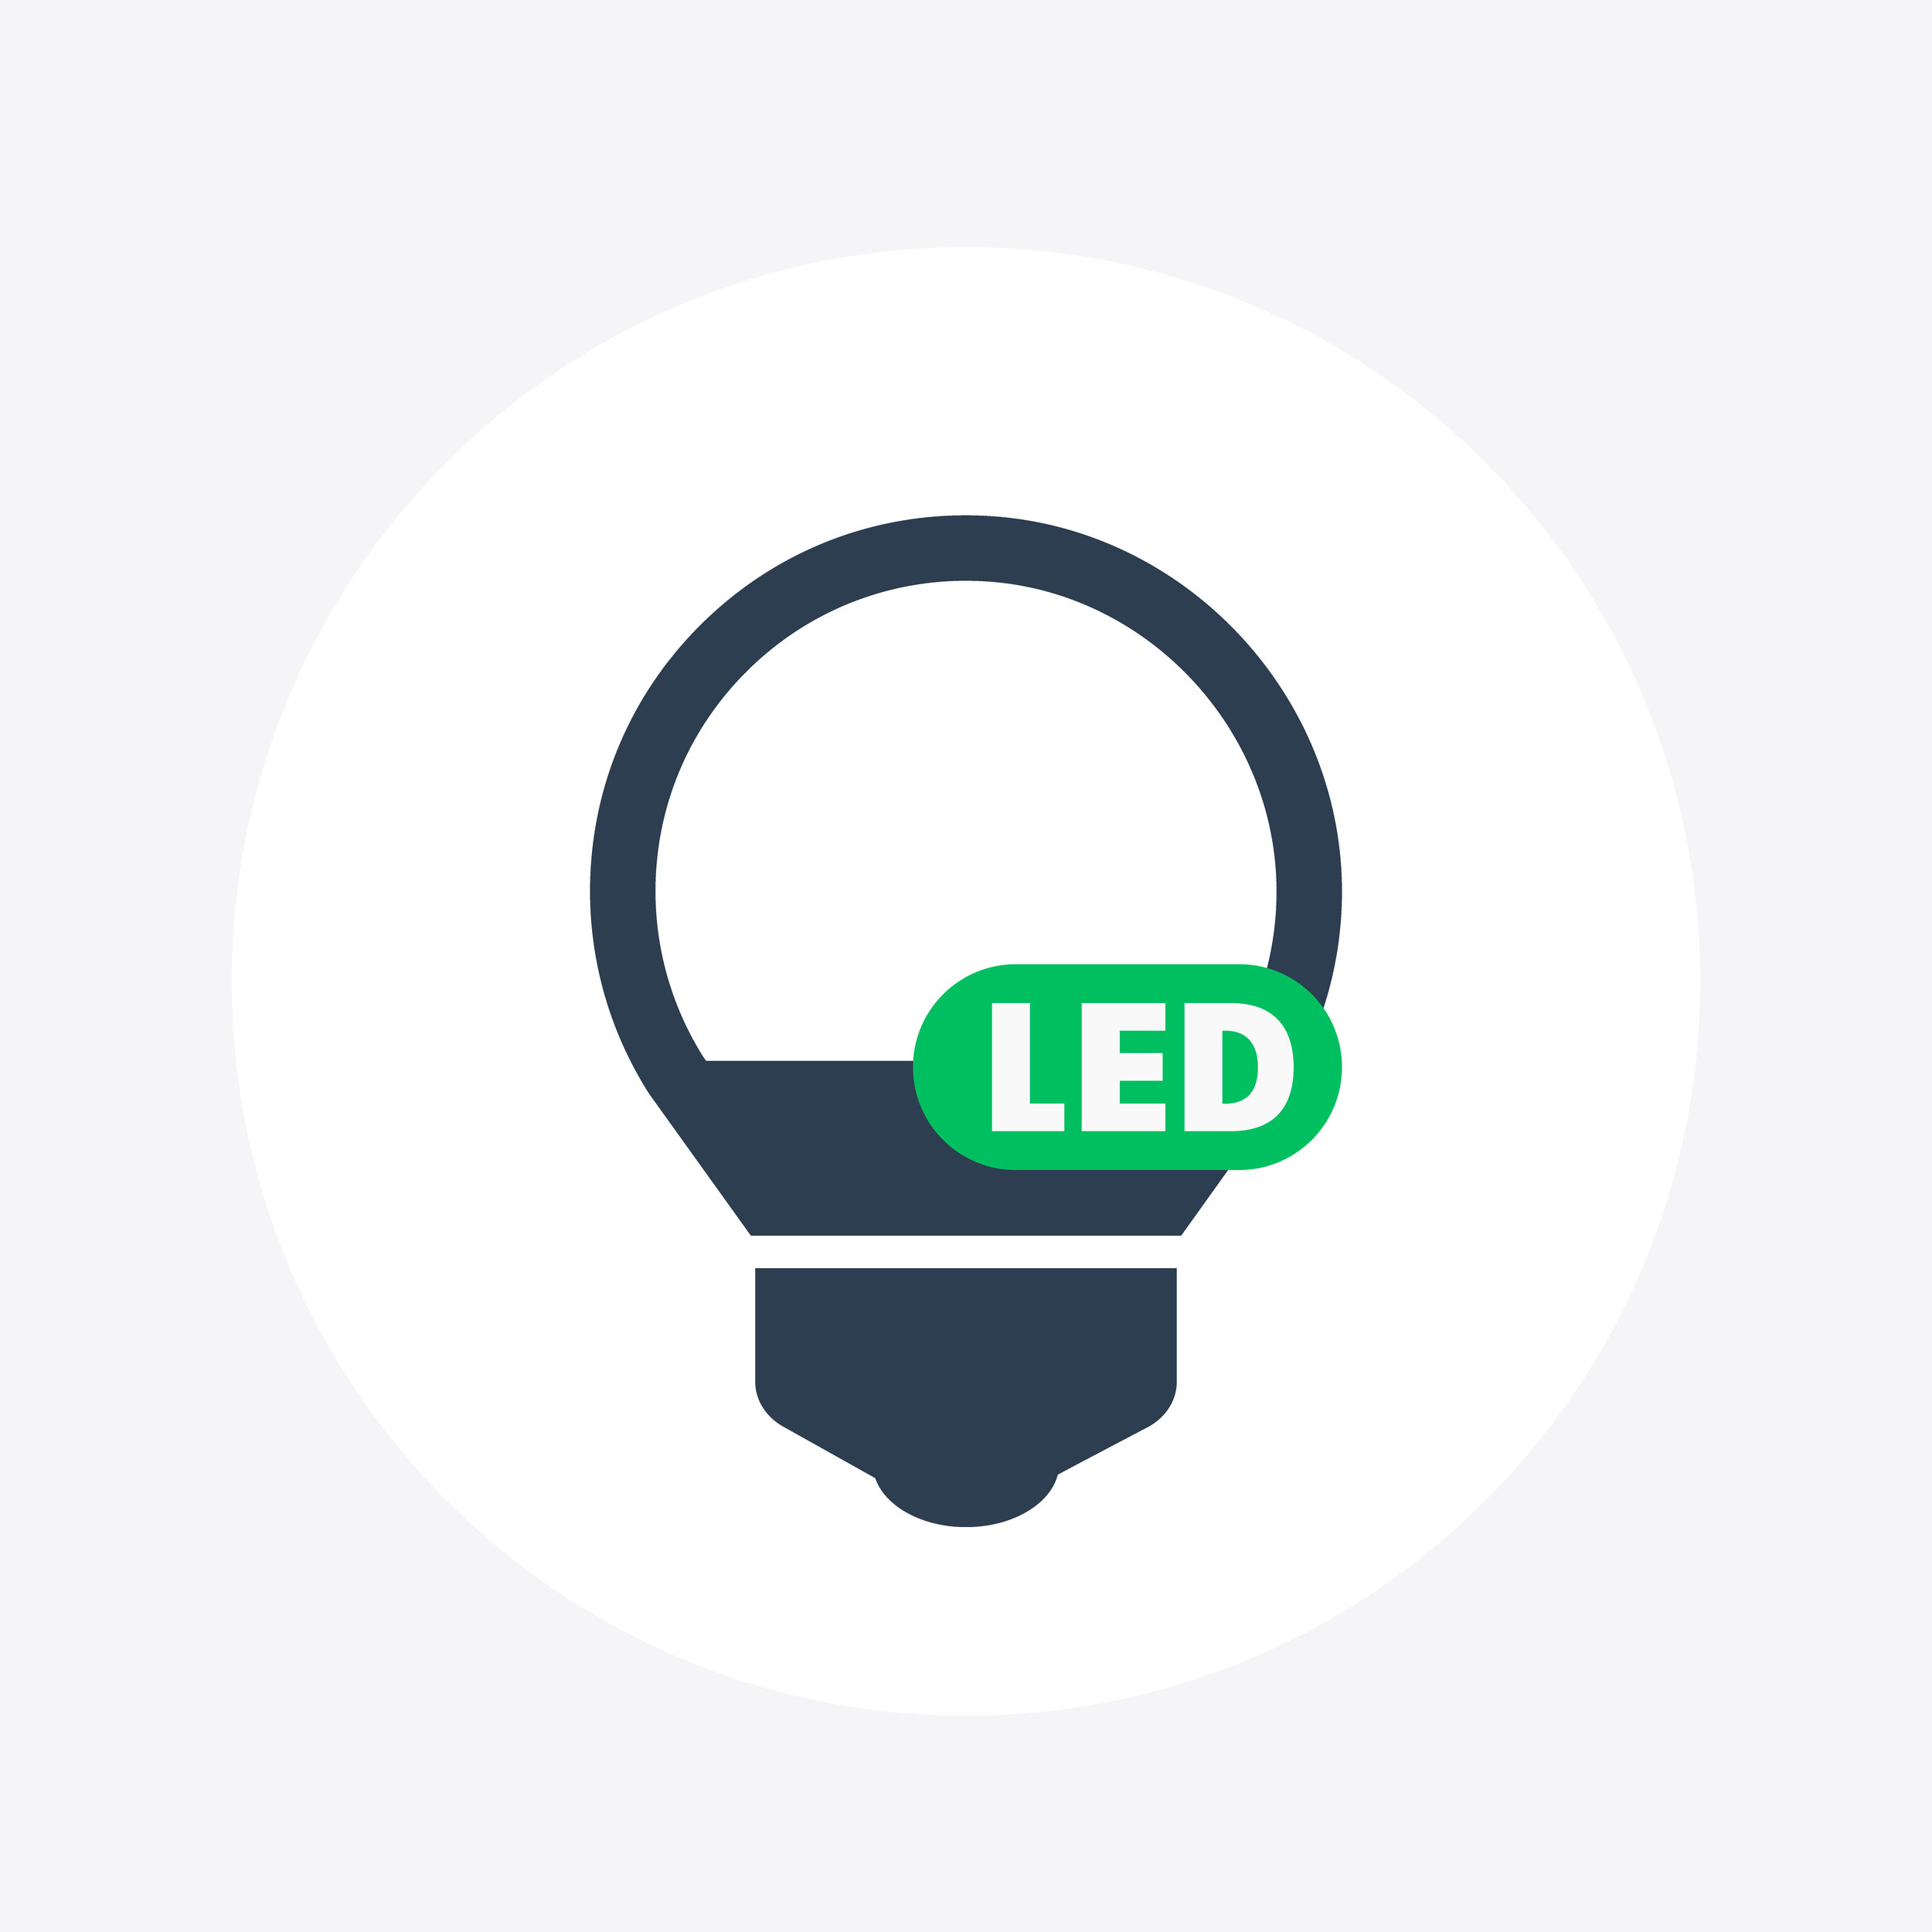 Green & Lean Manufacturing - It starts with the simple things, like being mindful of your resources both short term, and for the long haul. Converting to LED lighting throughout our space saved us $700 a year on our electric bill, and will save us over $19,000 over the next 20 years